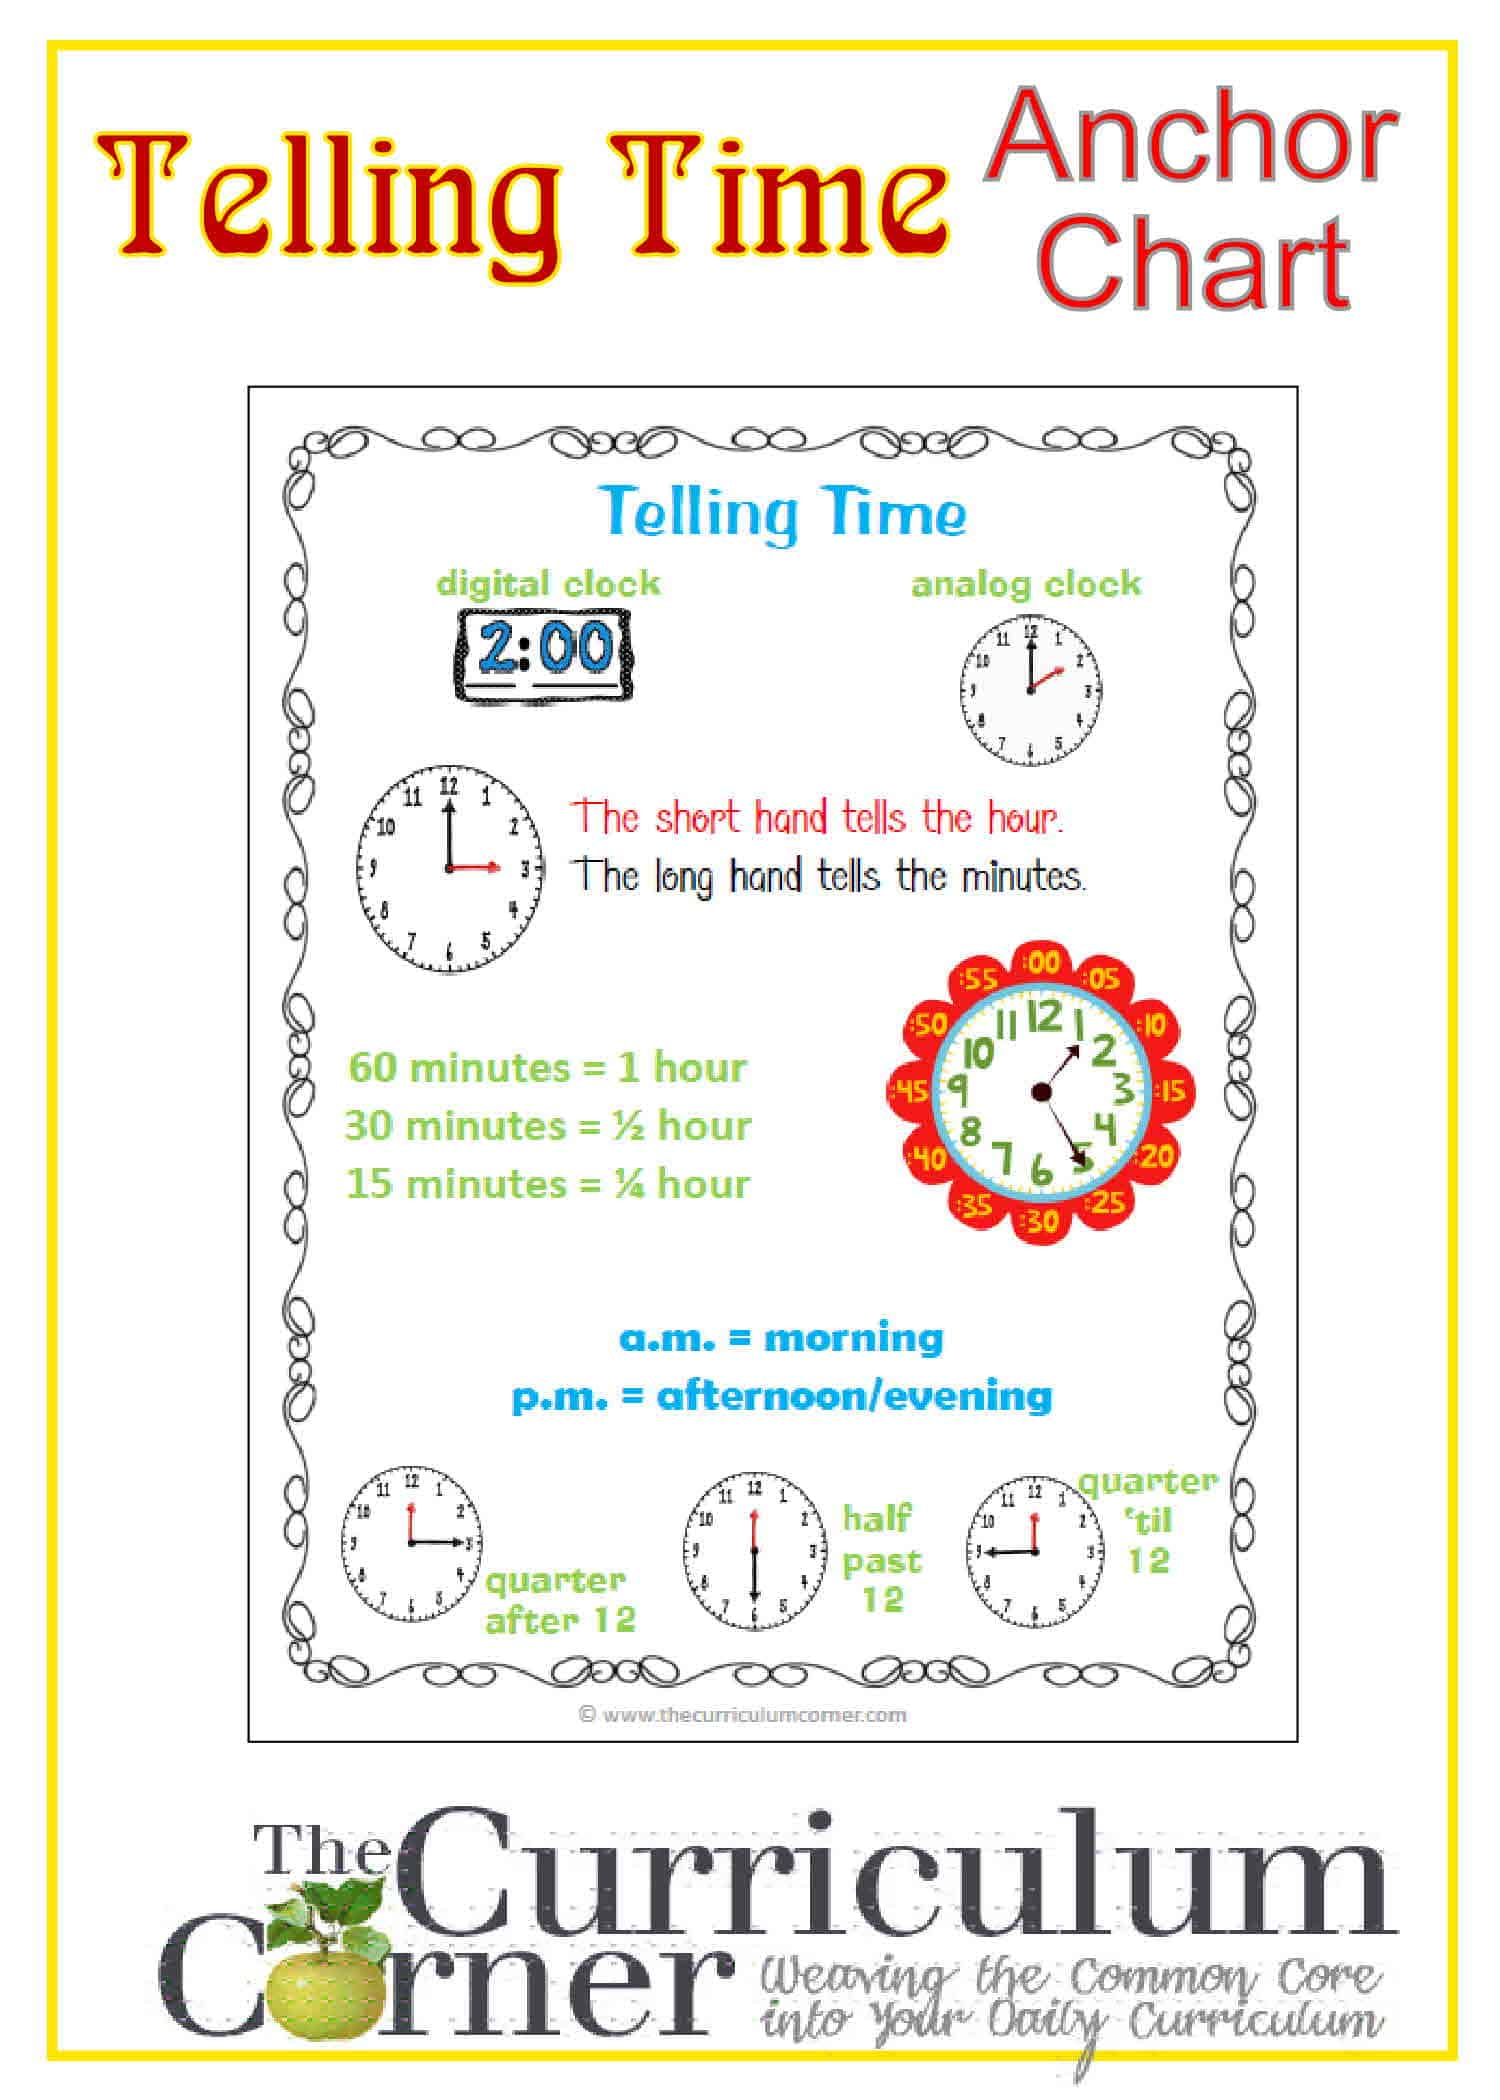 small resolution of Telling Time Anchor Chart - The Curriculum Corner 123